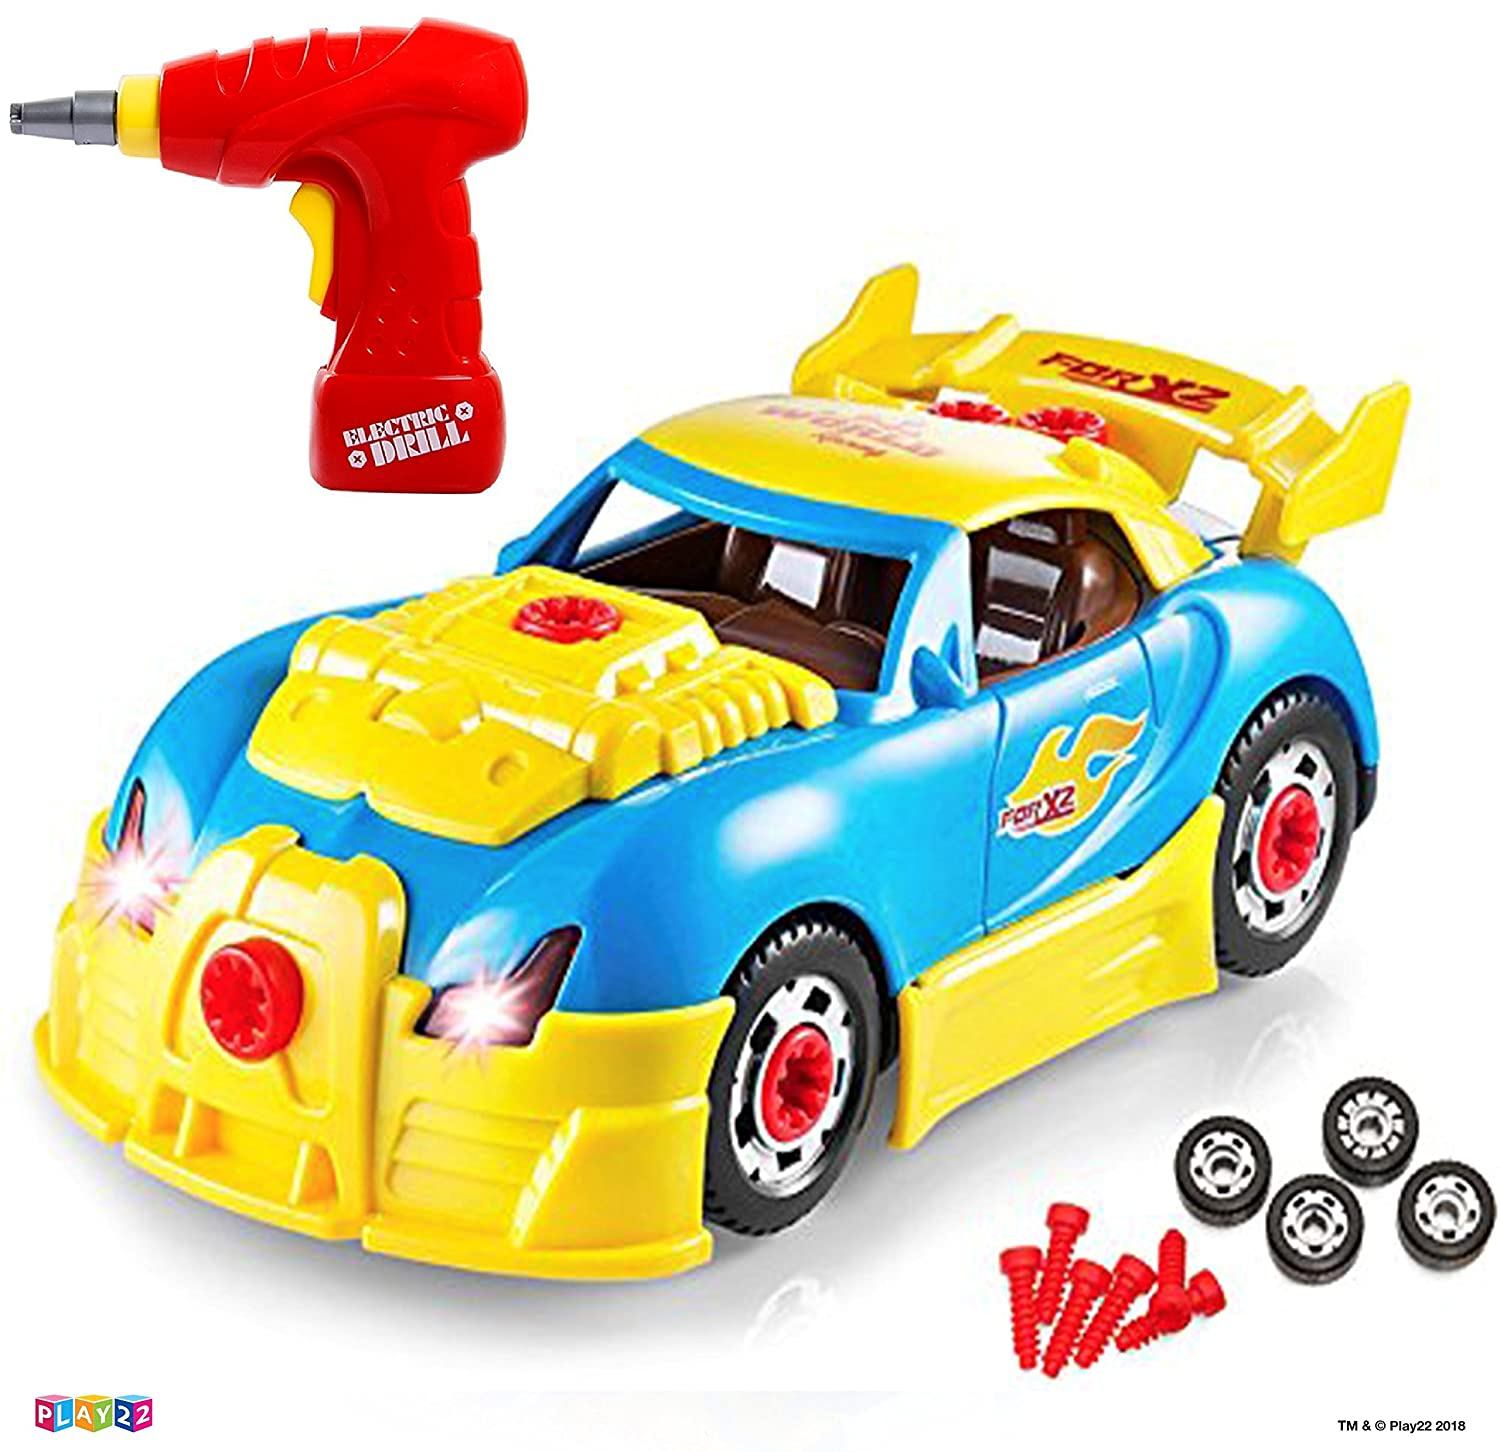 Play22 Take Apart Racing Car O...